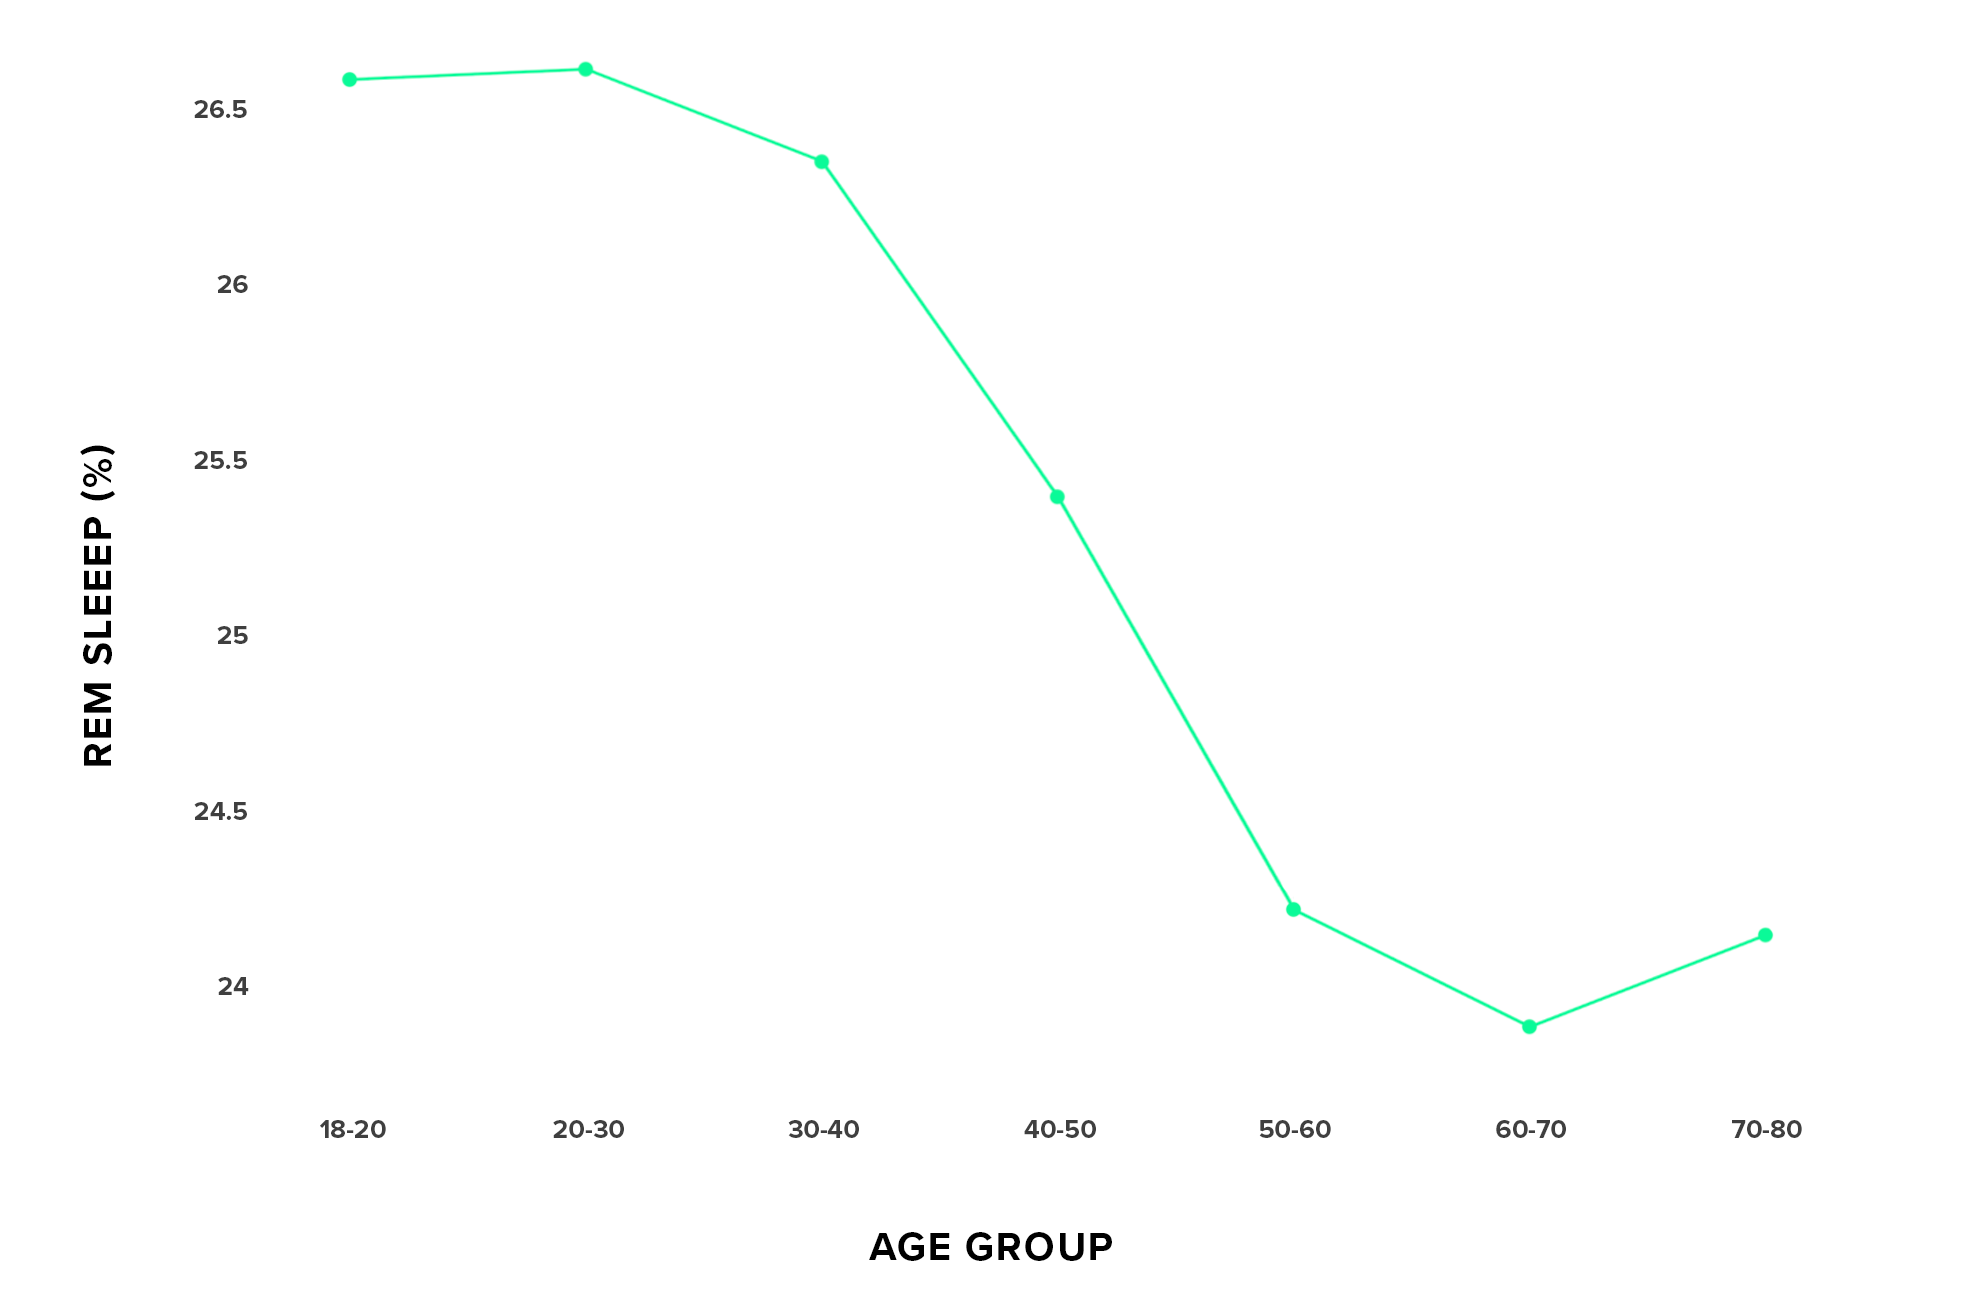 Average percentage of REM sleep for various age groups, tracked by WHOOP.